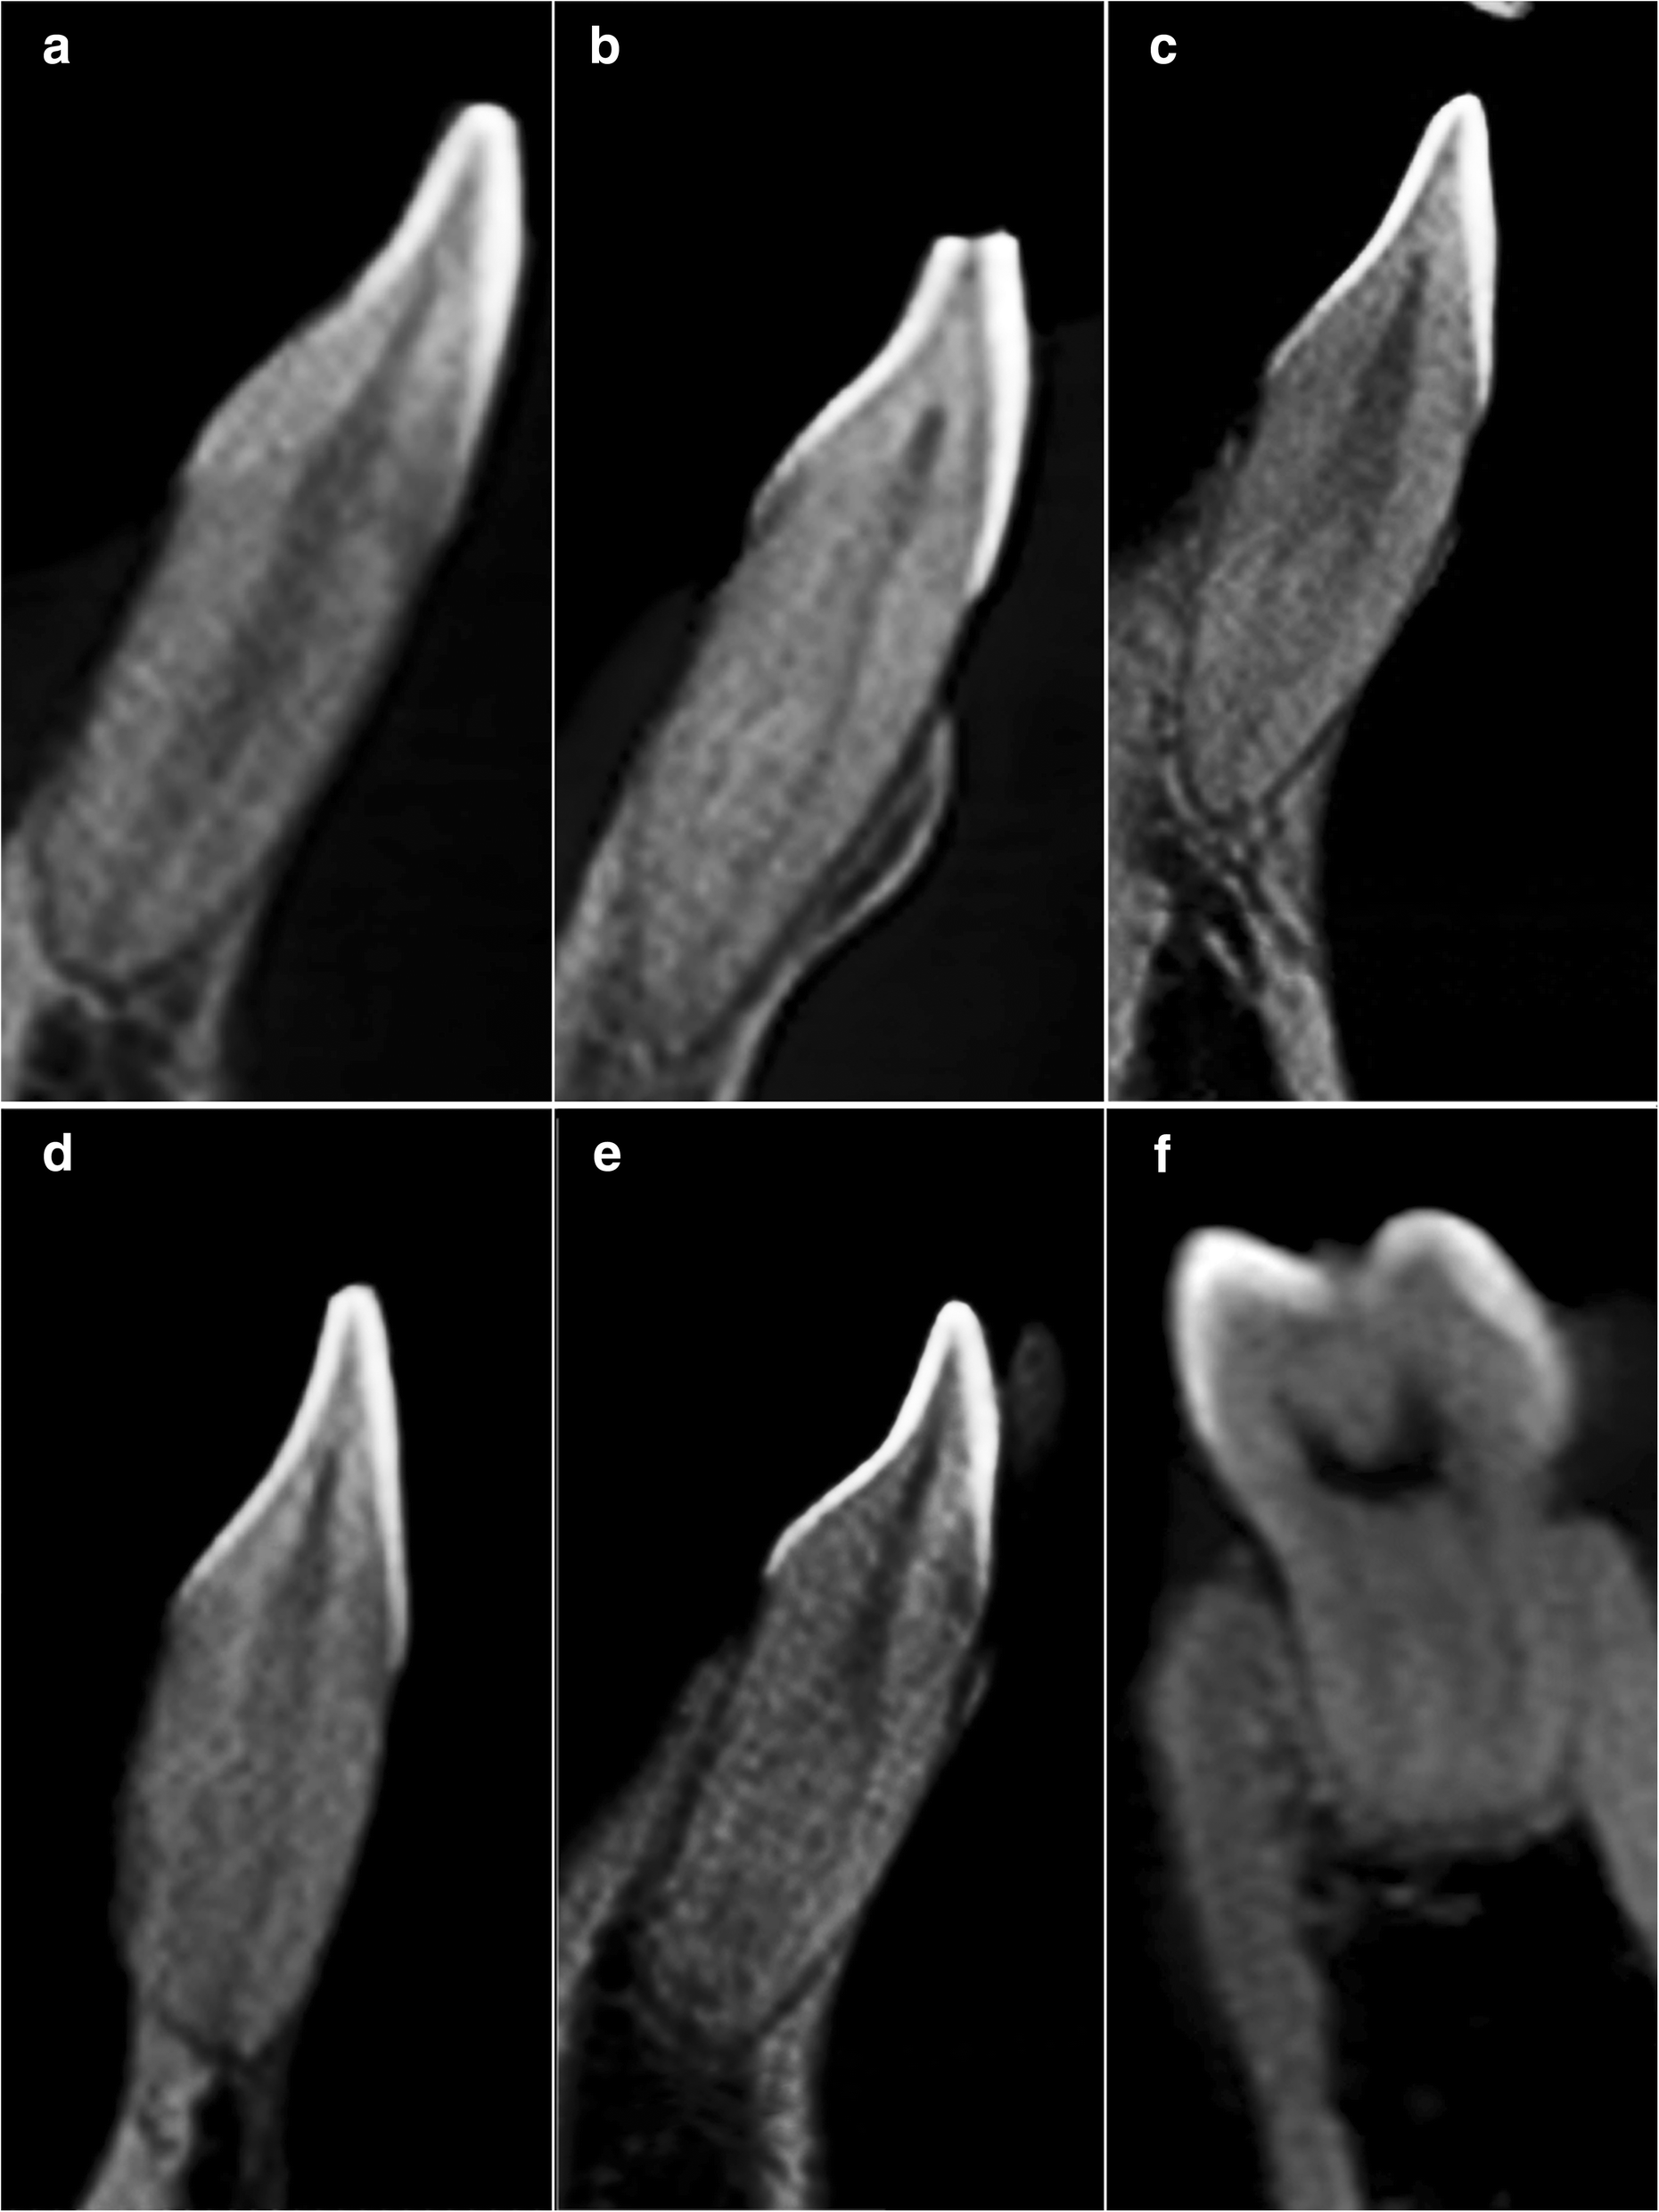 Root canal morphology of permanent teeth in a Malaysian